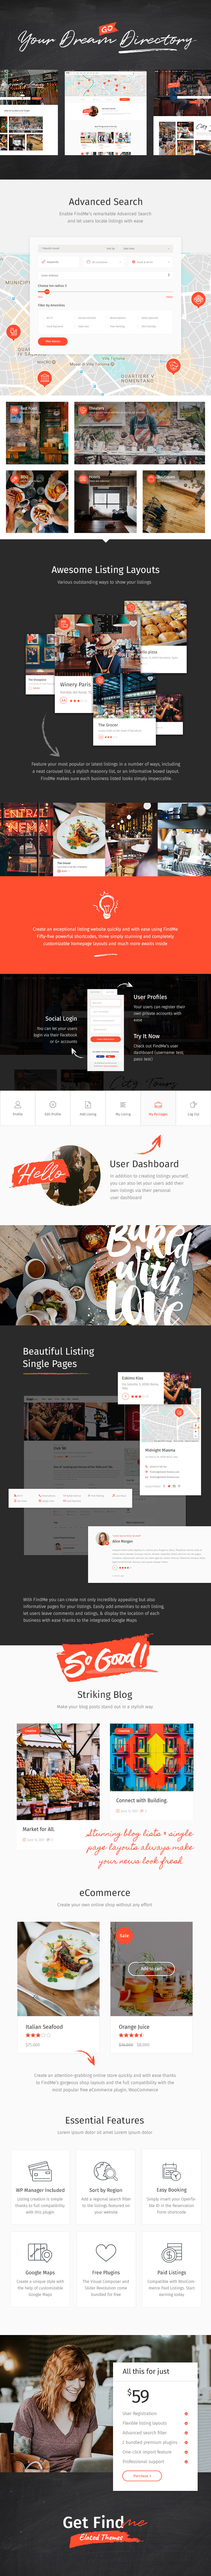 FindMe - An Urban and Vibrant Directory Theme